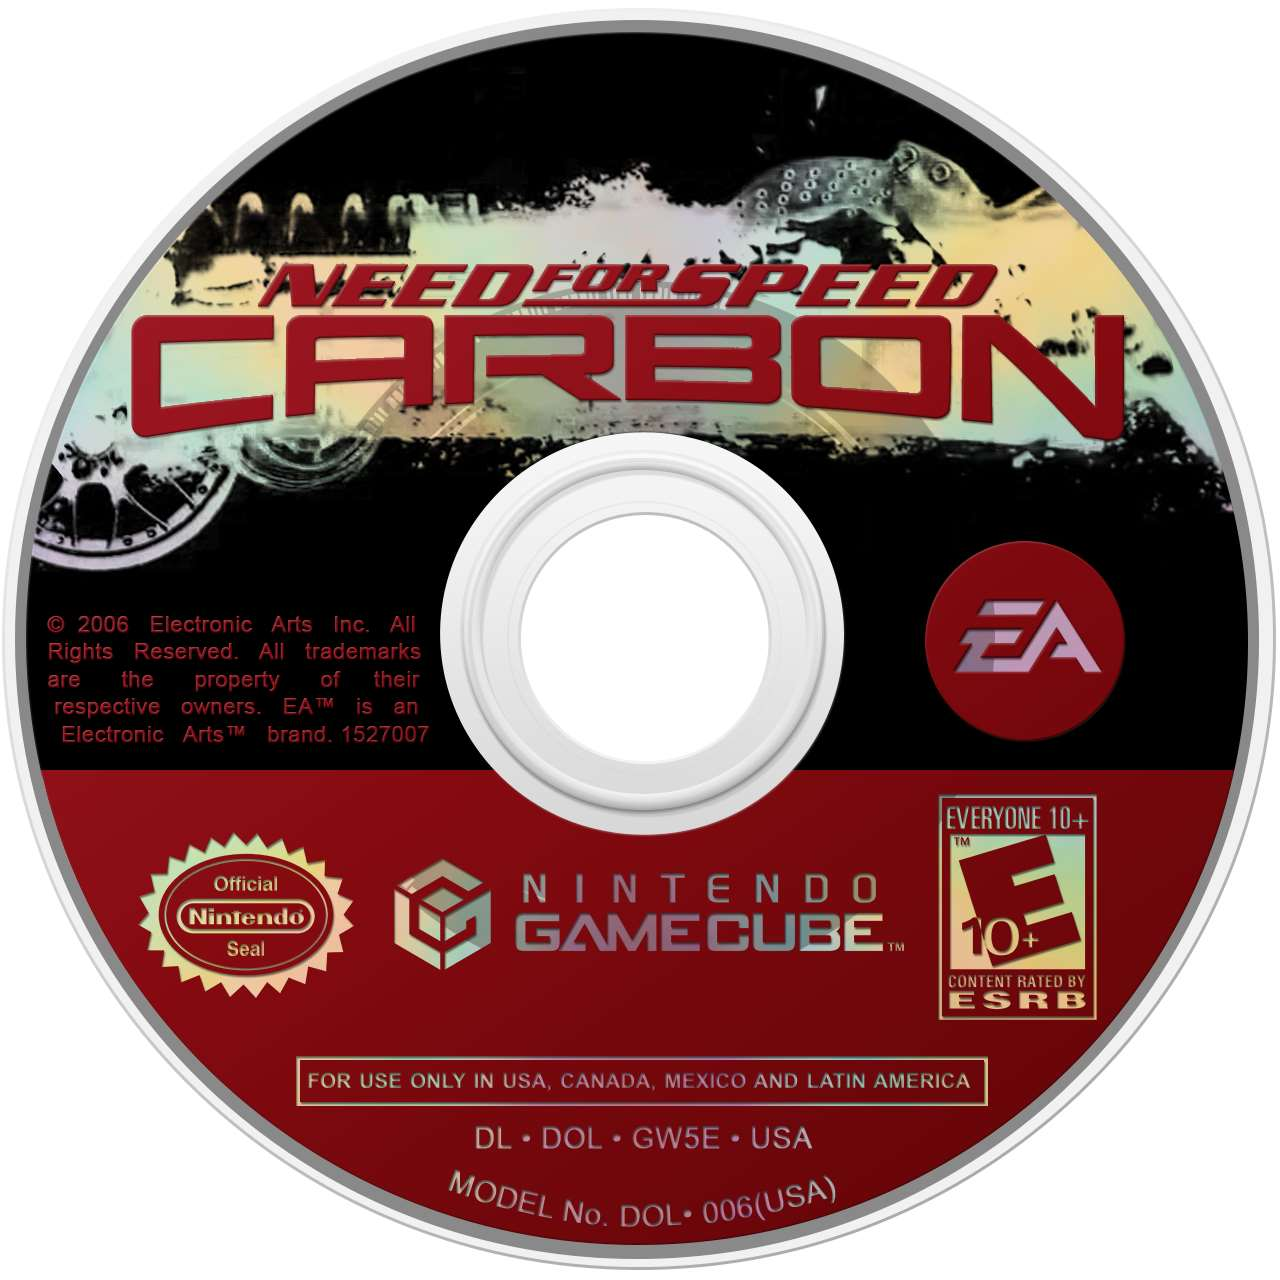 Need for Speed: Carbon - Nintendo GameCube Game Complete - YourGamingShop.com - Buy, Sell, Trade Video Games Online. 120 Day Warranty. Satisfaction Guaranteed.